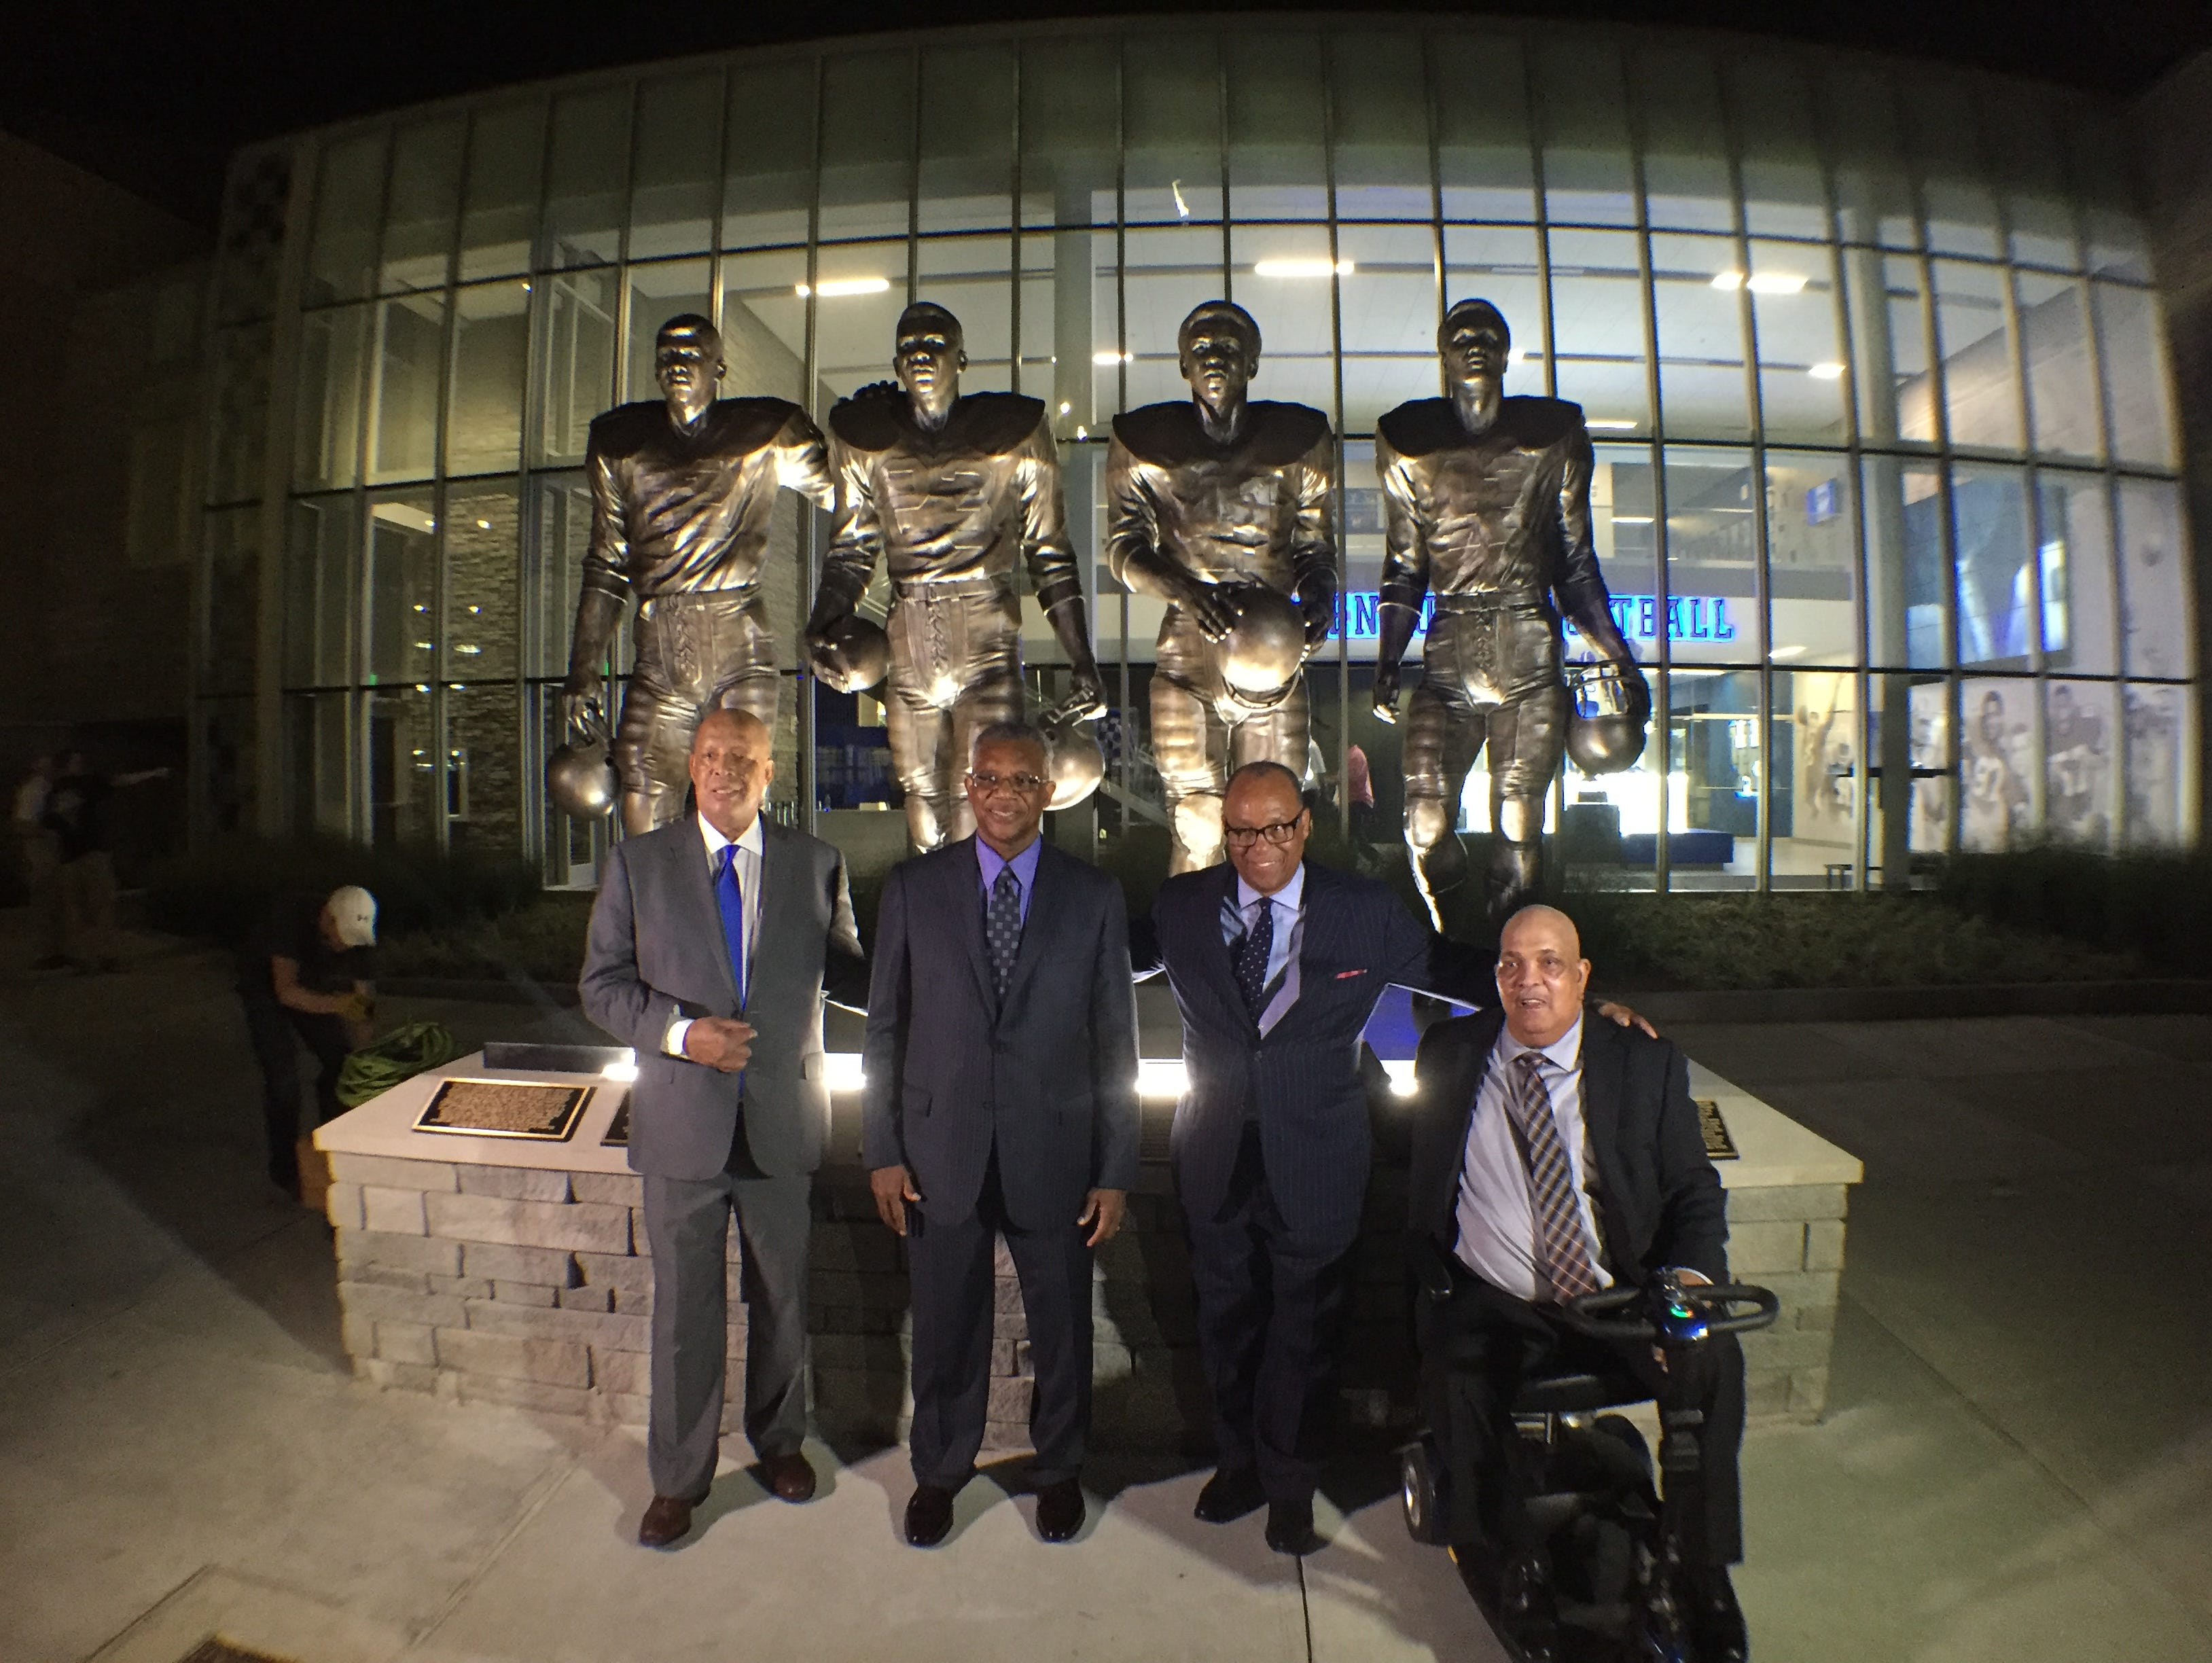 From left to right: Mel Page, Nate Northington, Wilbur Hackett and Houston Hogg pose in front of statue honoring them for breaking the SEC's color barrier